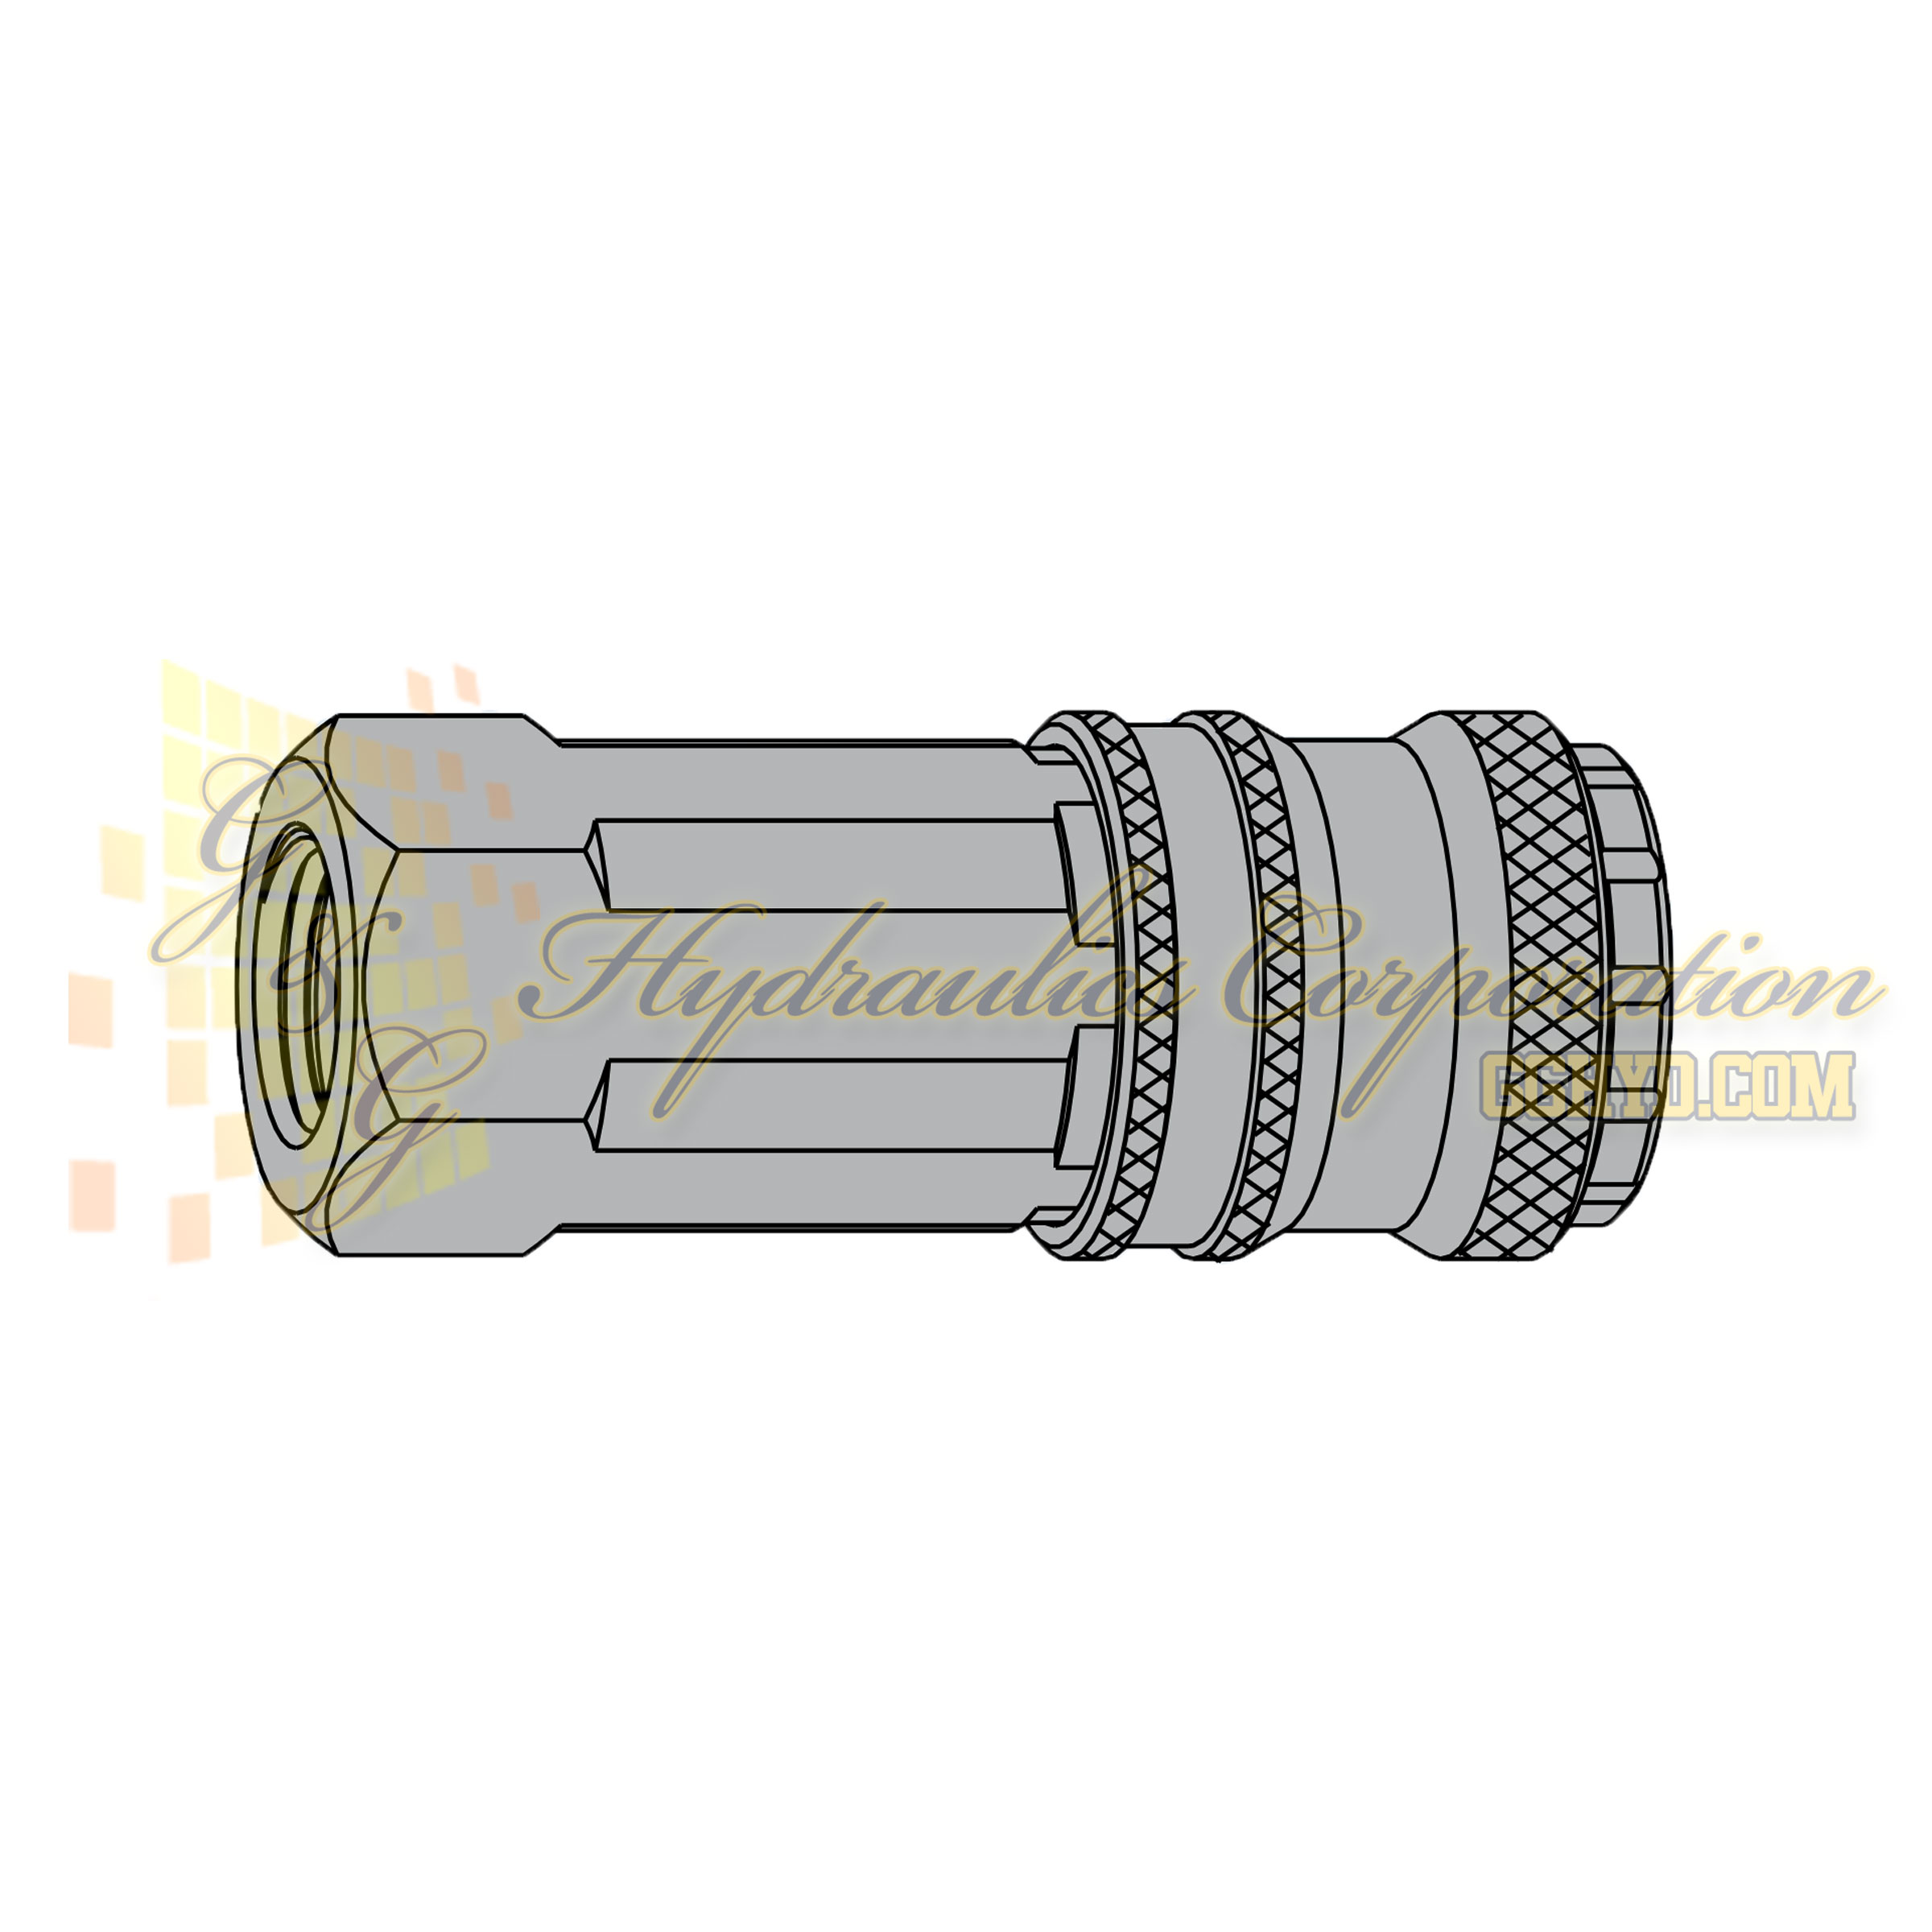 "10-320-1205 CEJN Standard and Vented Safety Coupler, 1/2"" BSPP Female Threads"